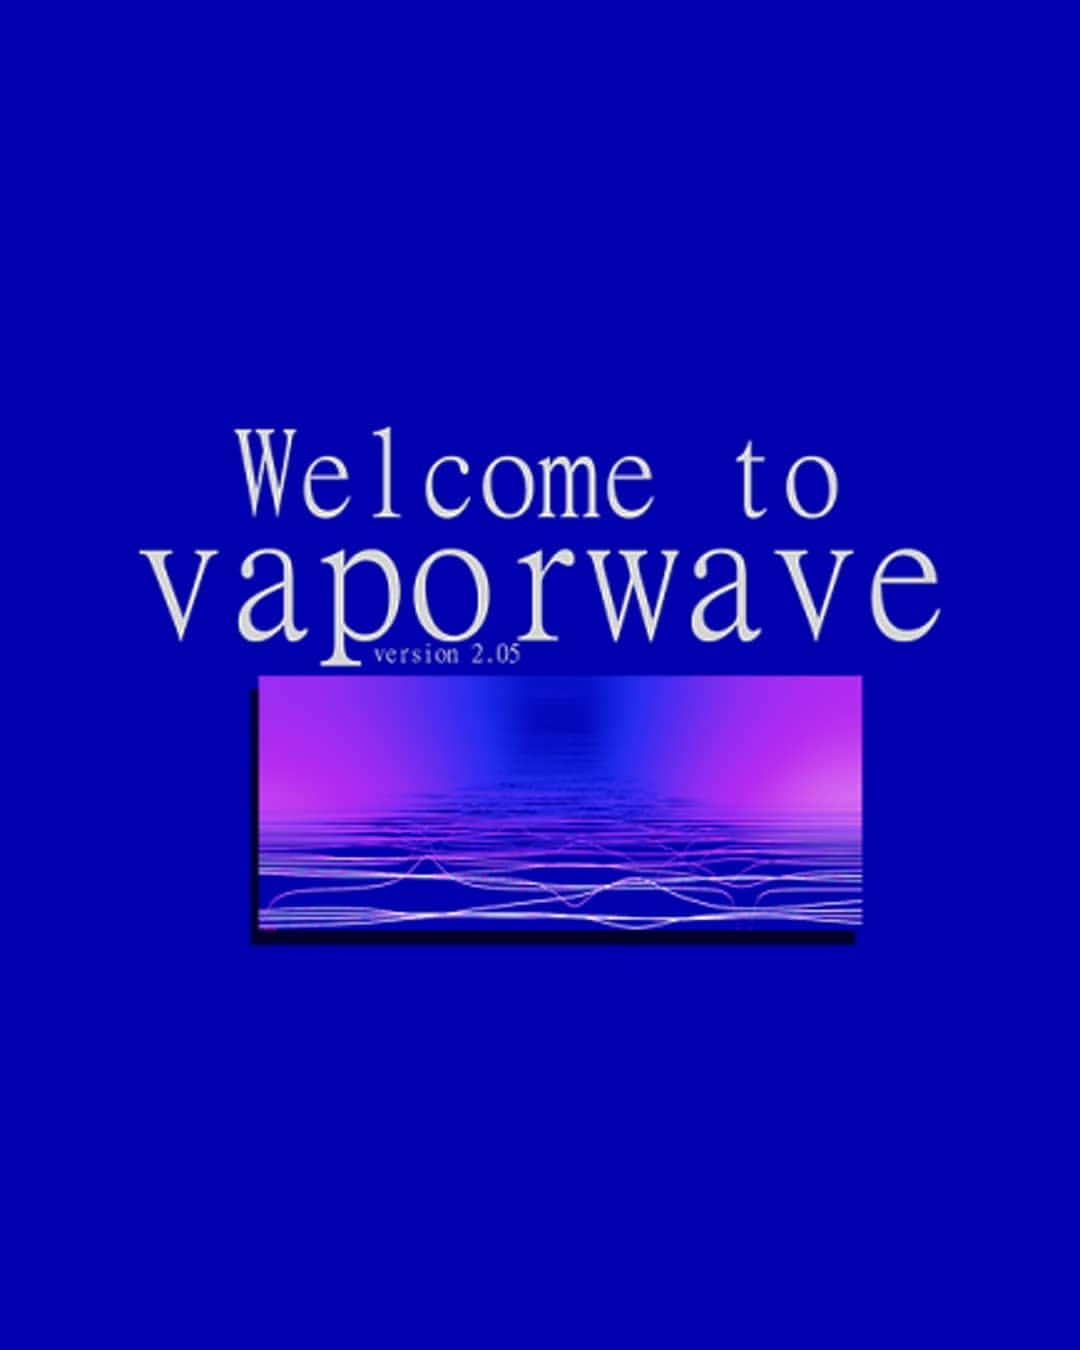 Vapor Anime Aesthetic Wallpapers - Top Free Vapor Anime